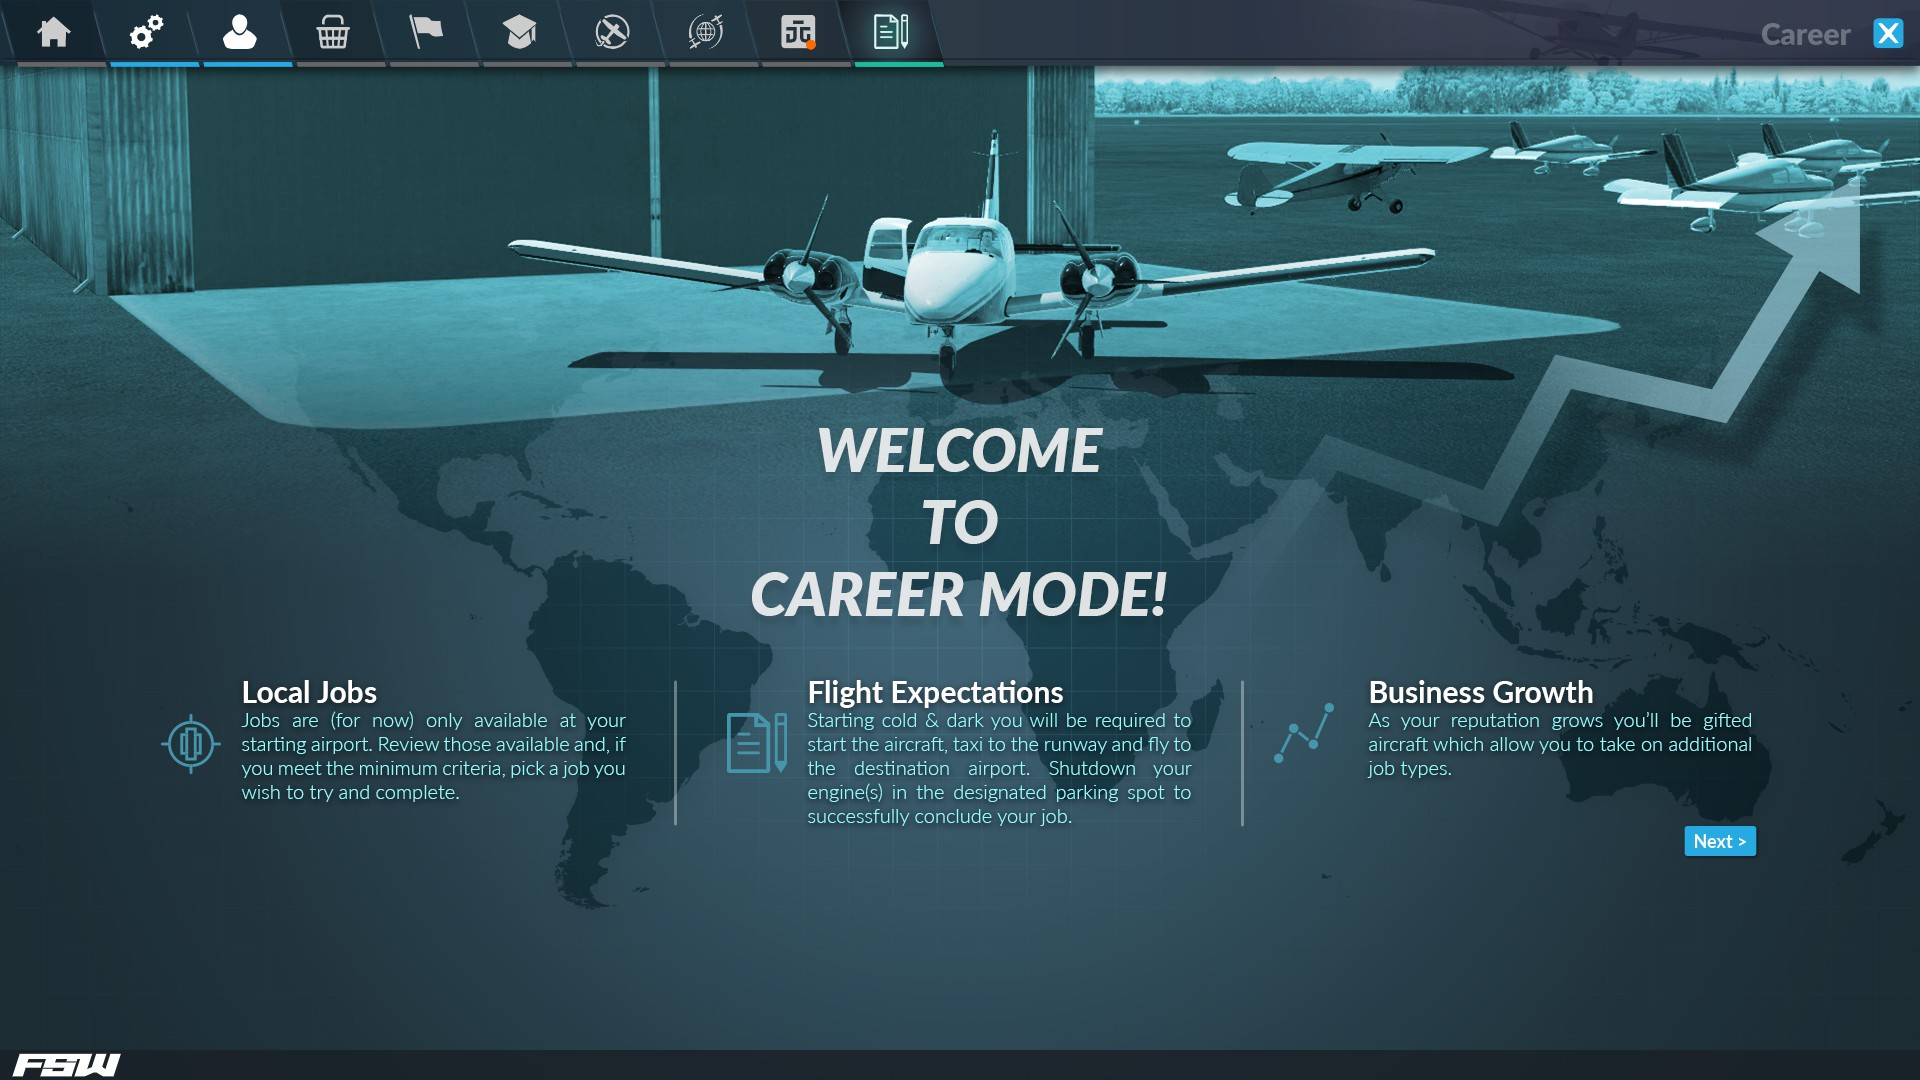 Career Mode welcome screen